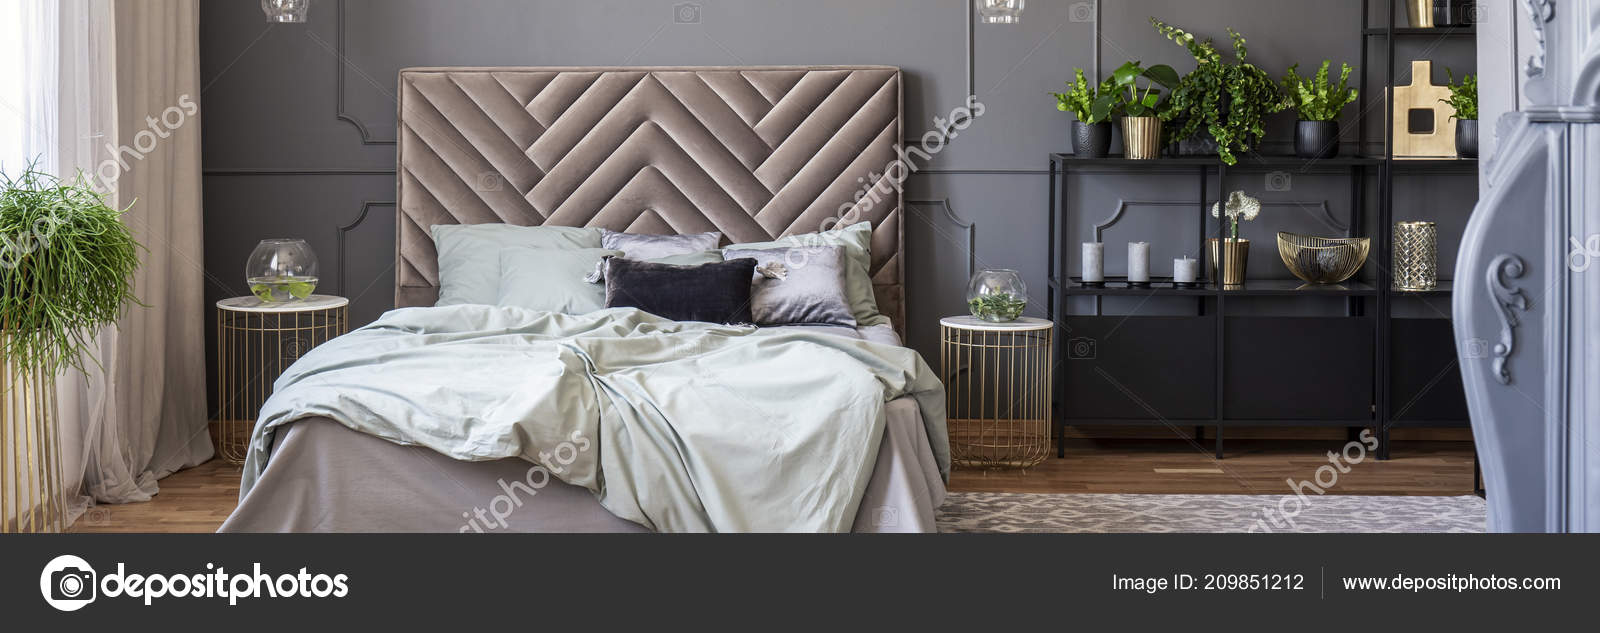 Sheets Bed Bedhead Grey Gold Bedroom Interior Plants Real Photo Stock Photo Image By C Photographee Eu 209851212